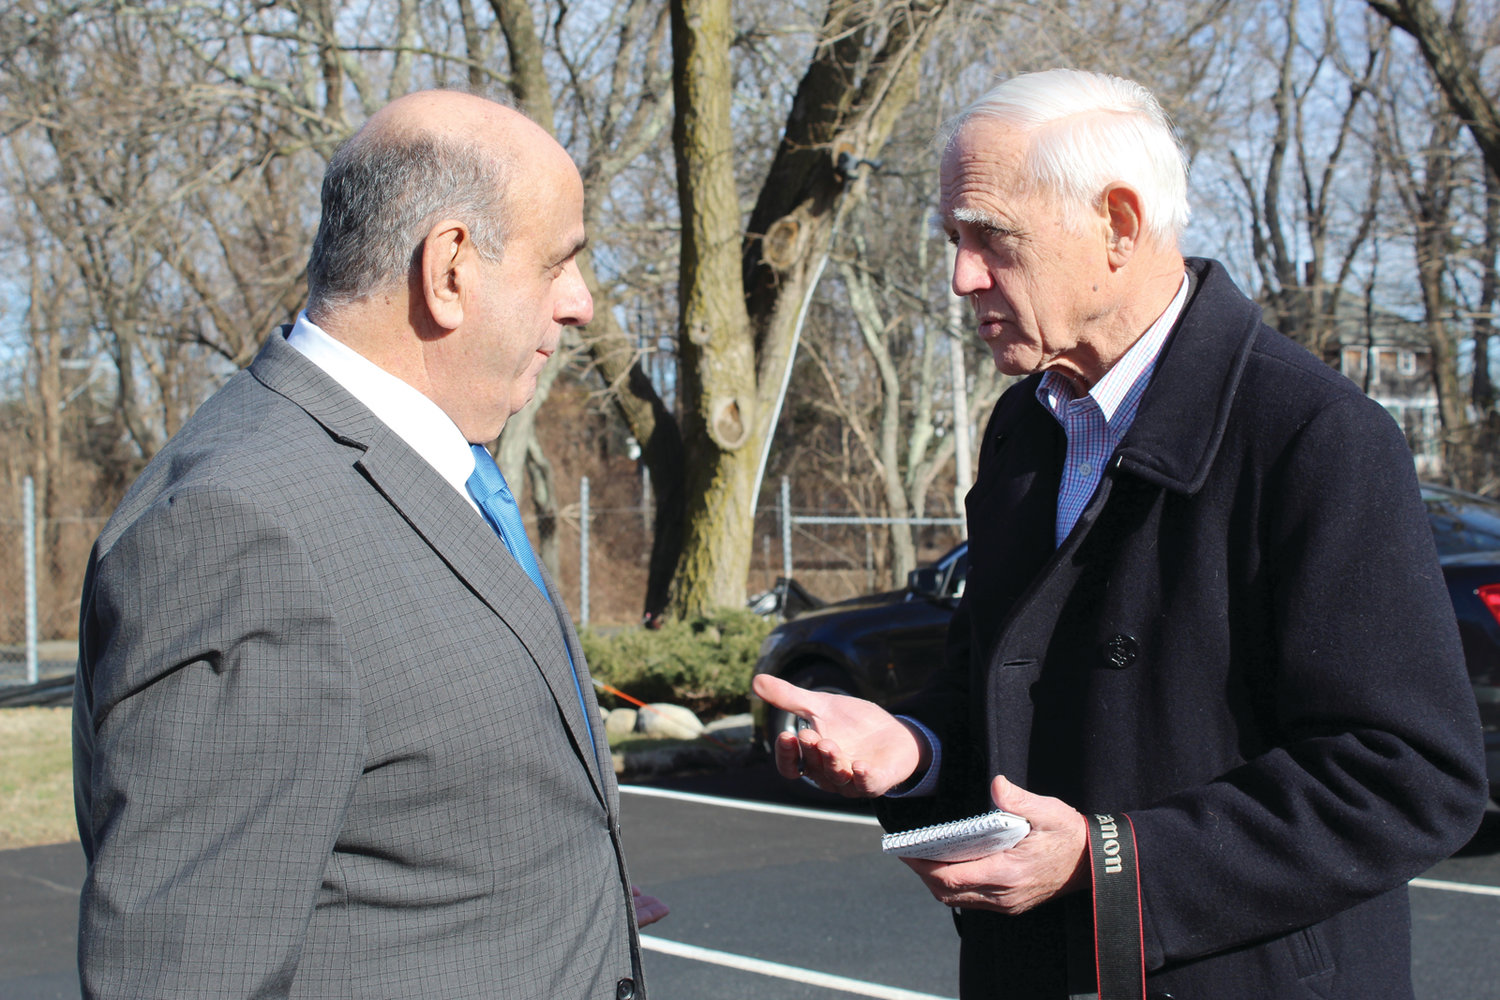 ON THE BEAT: Warwick Beacon publisher and editor John Howell, right, interviews Warwick Mayor Joseph Solomon on Tuesday at Warwick City Hall. Howell, who also publishes the Cranston Herald, purchased the Beacon in late 1969.